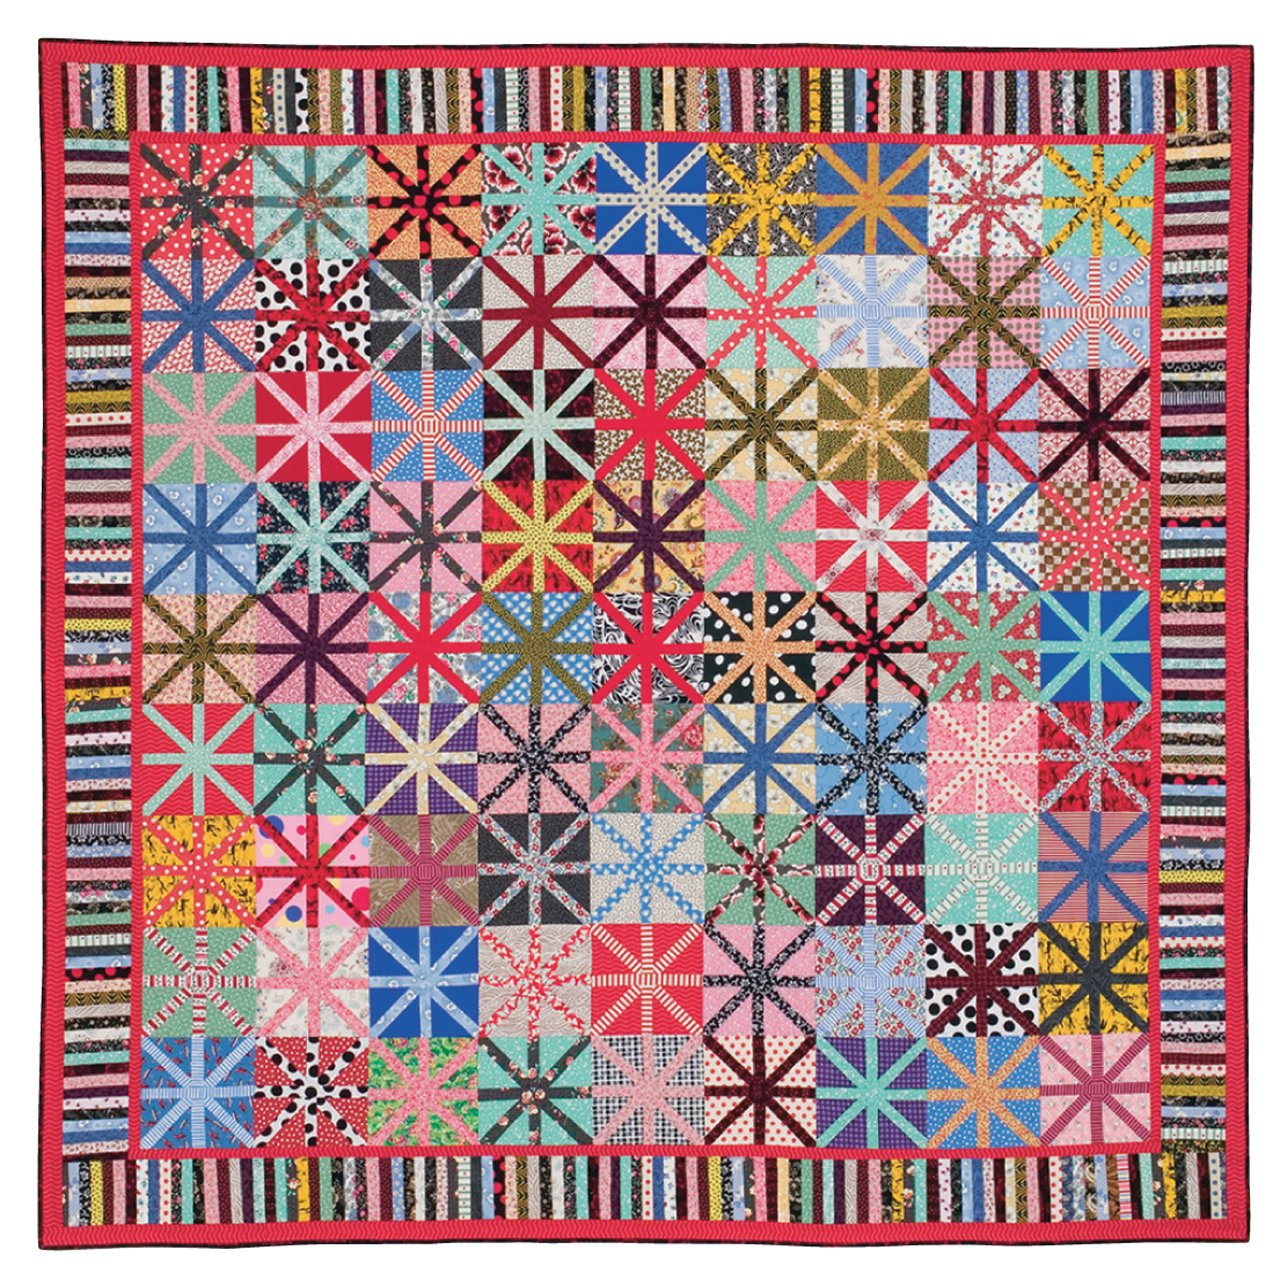 Easy Quilts for Beginners and Beyond: 14 Quilt Patterns from Quiltmaker Magazine by That Patchwork Place (Image #4)